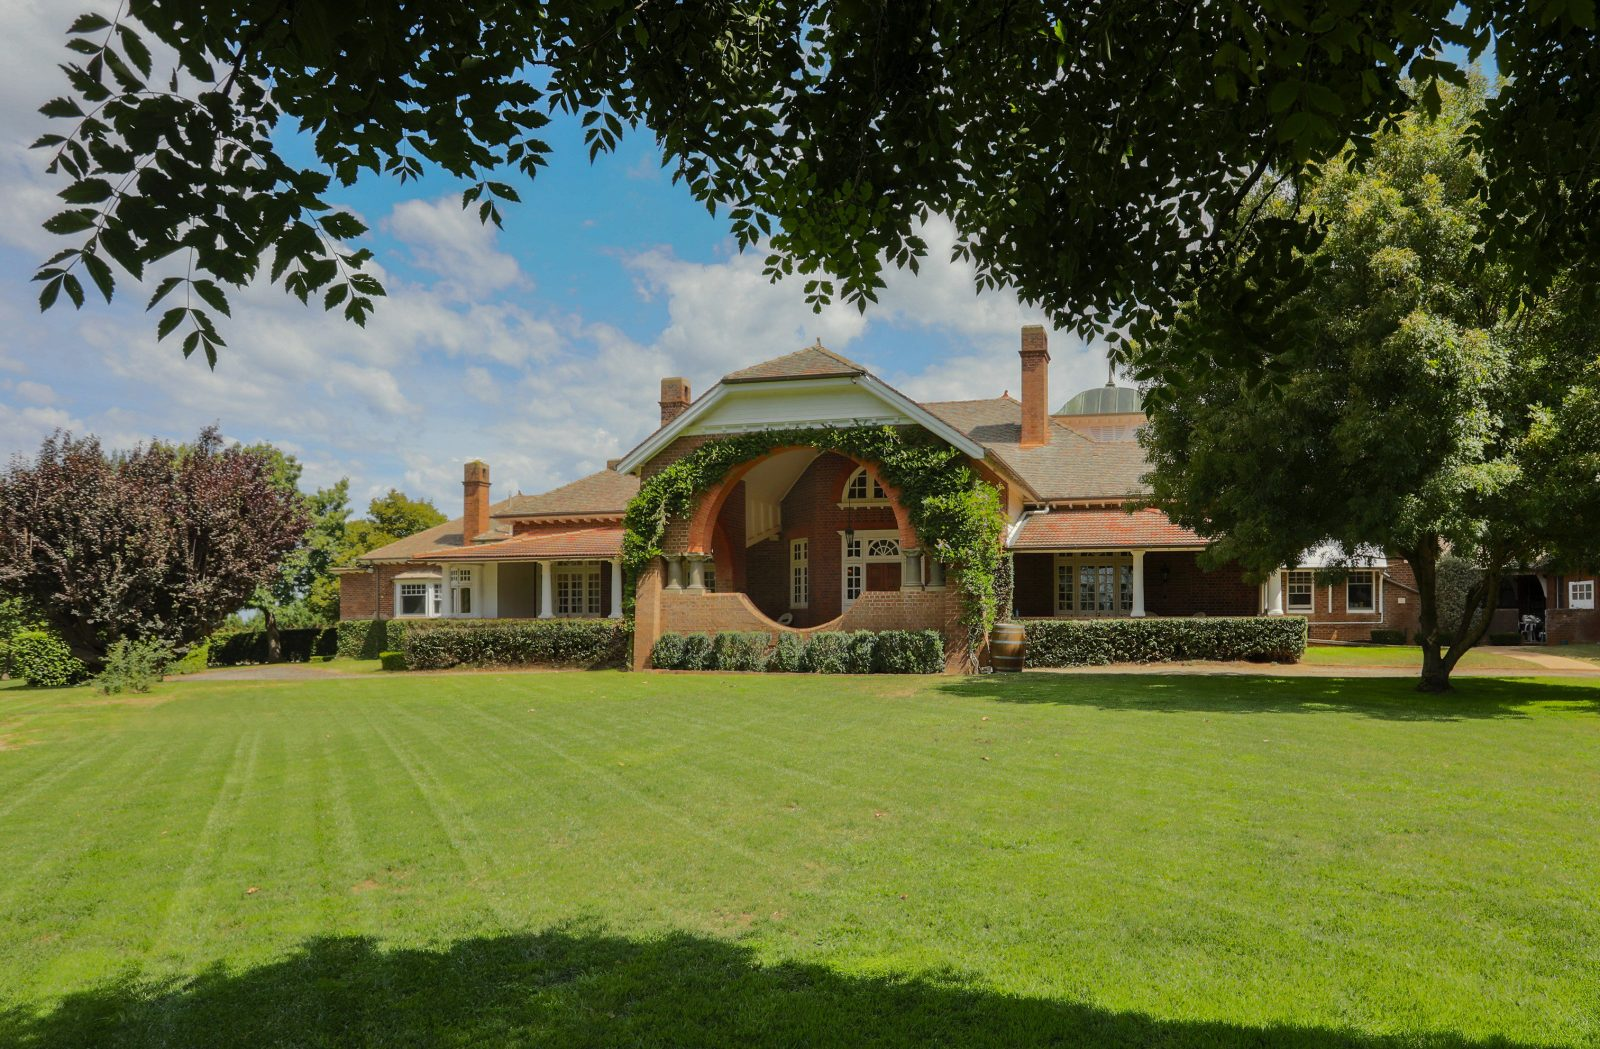 Heritage listed home and grounds